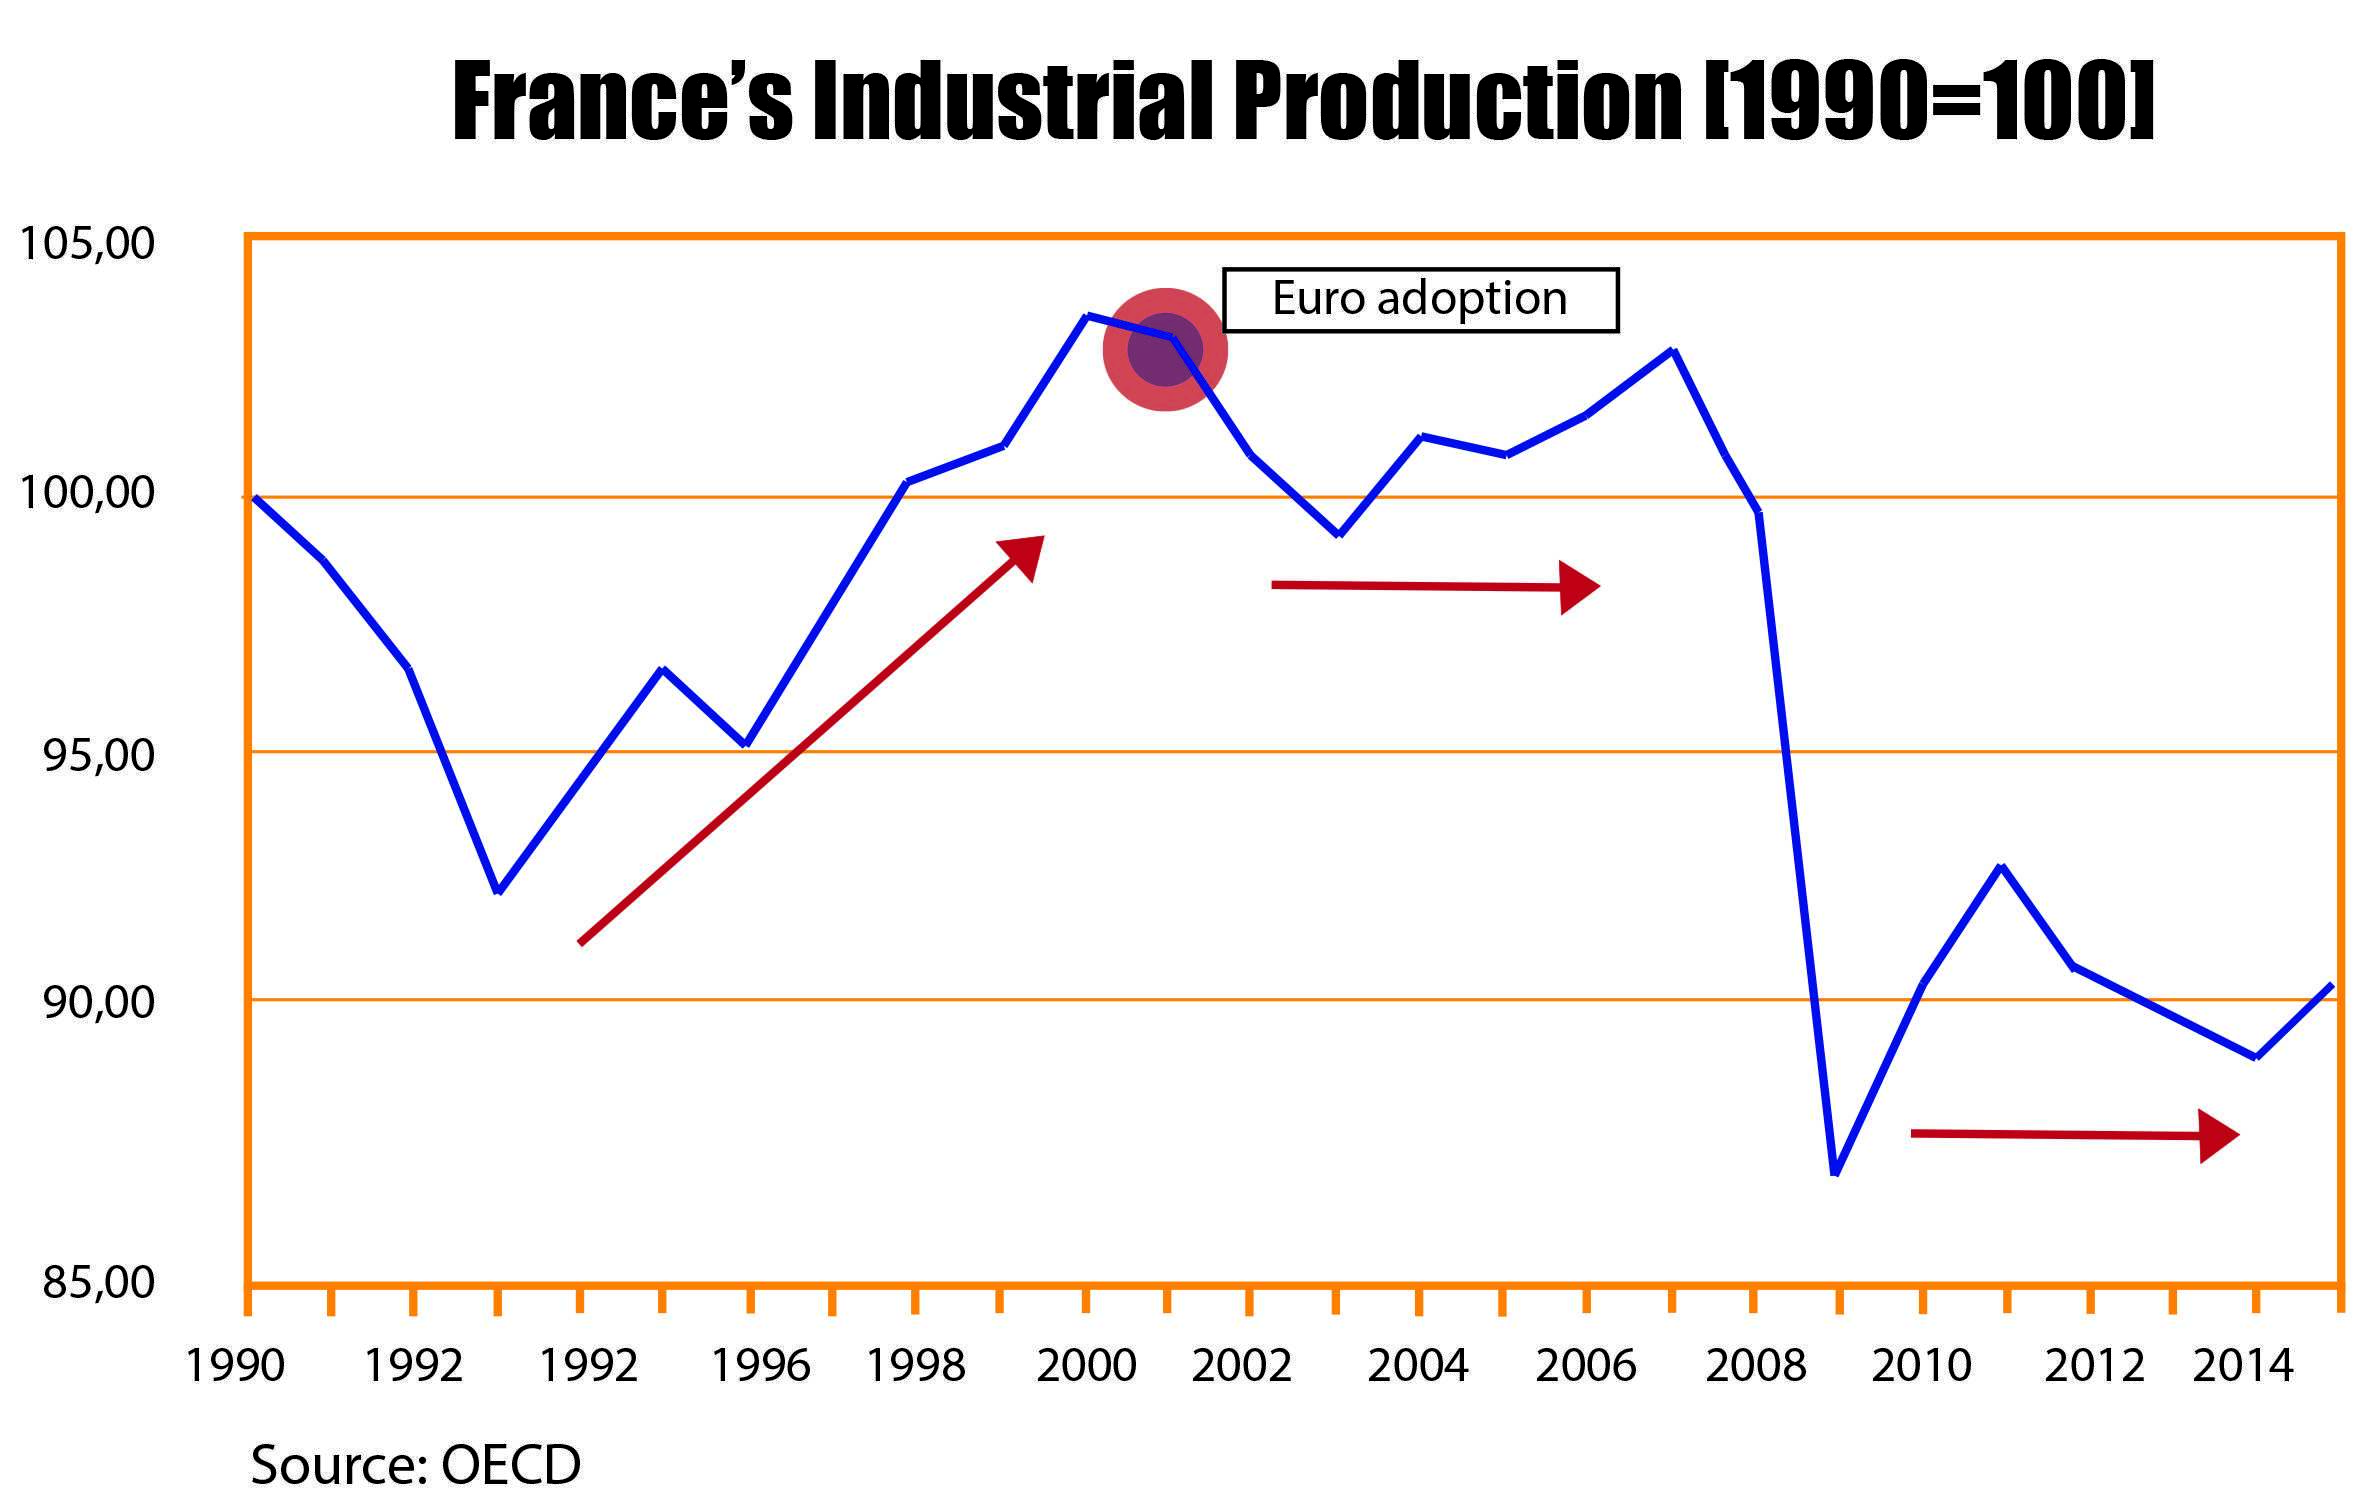 https://gefira.org/wp-content/uploads/2016/11/france-industrial-production-FINAL.jpg